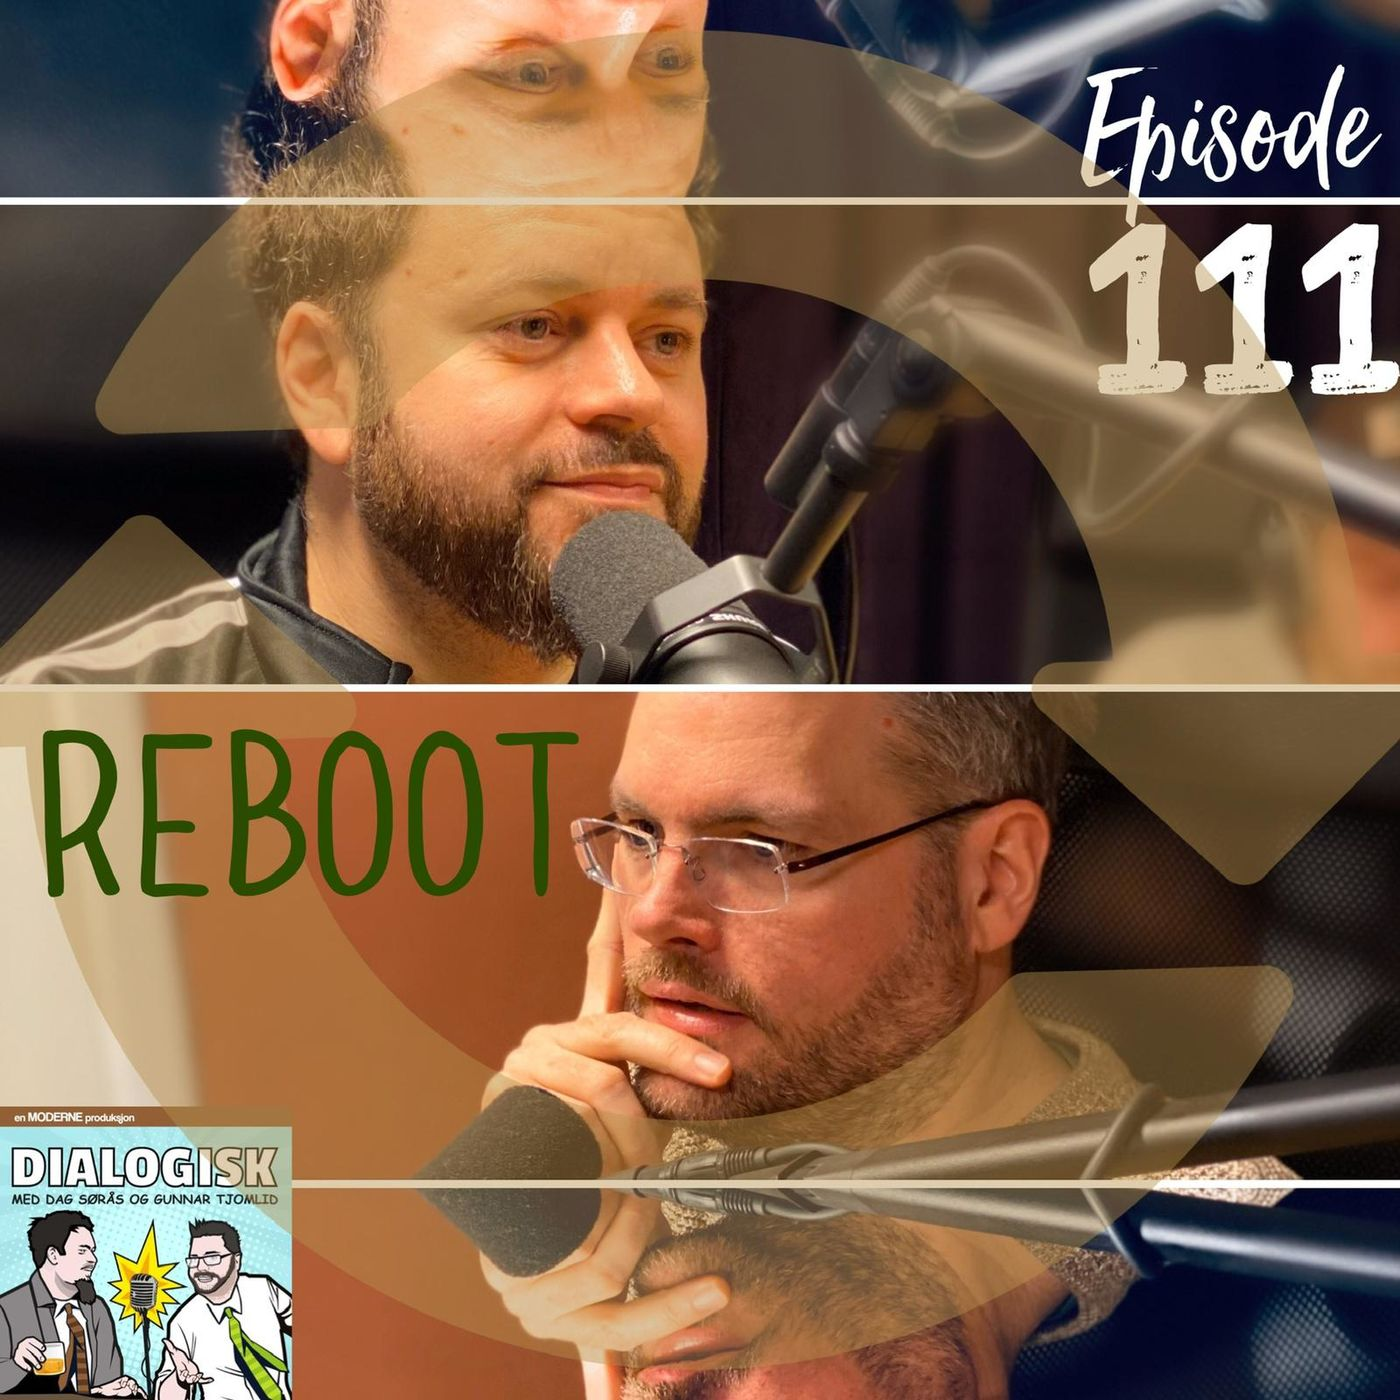 Episode 111: Reboot